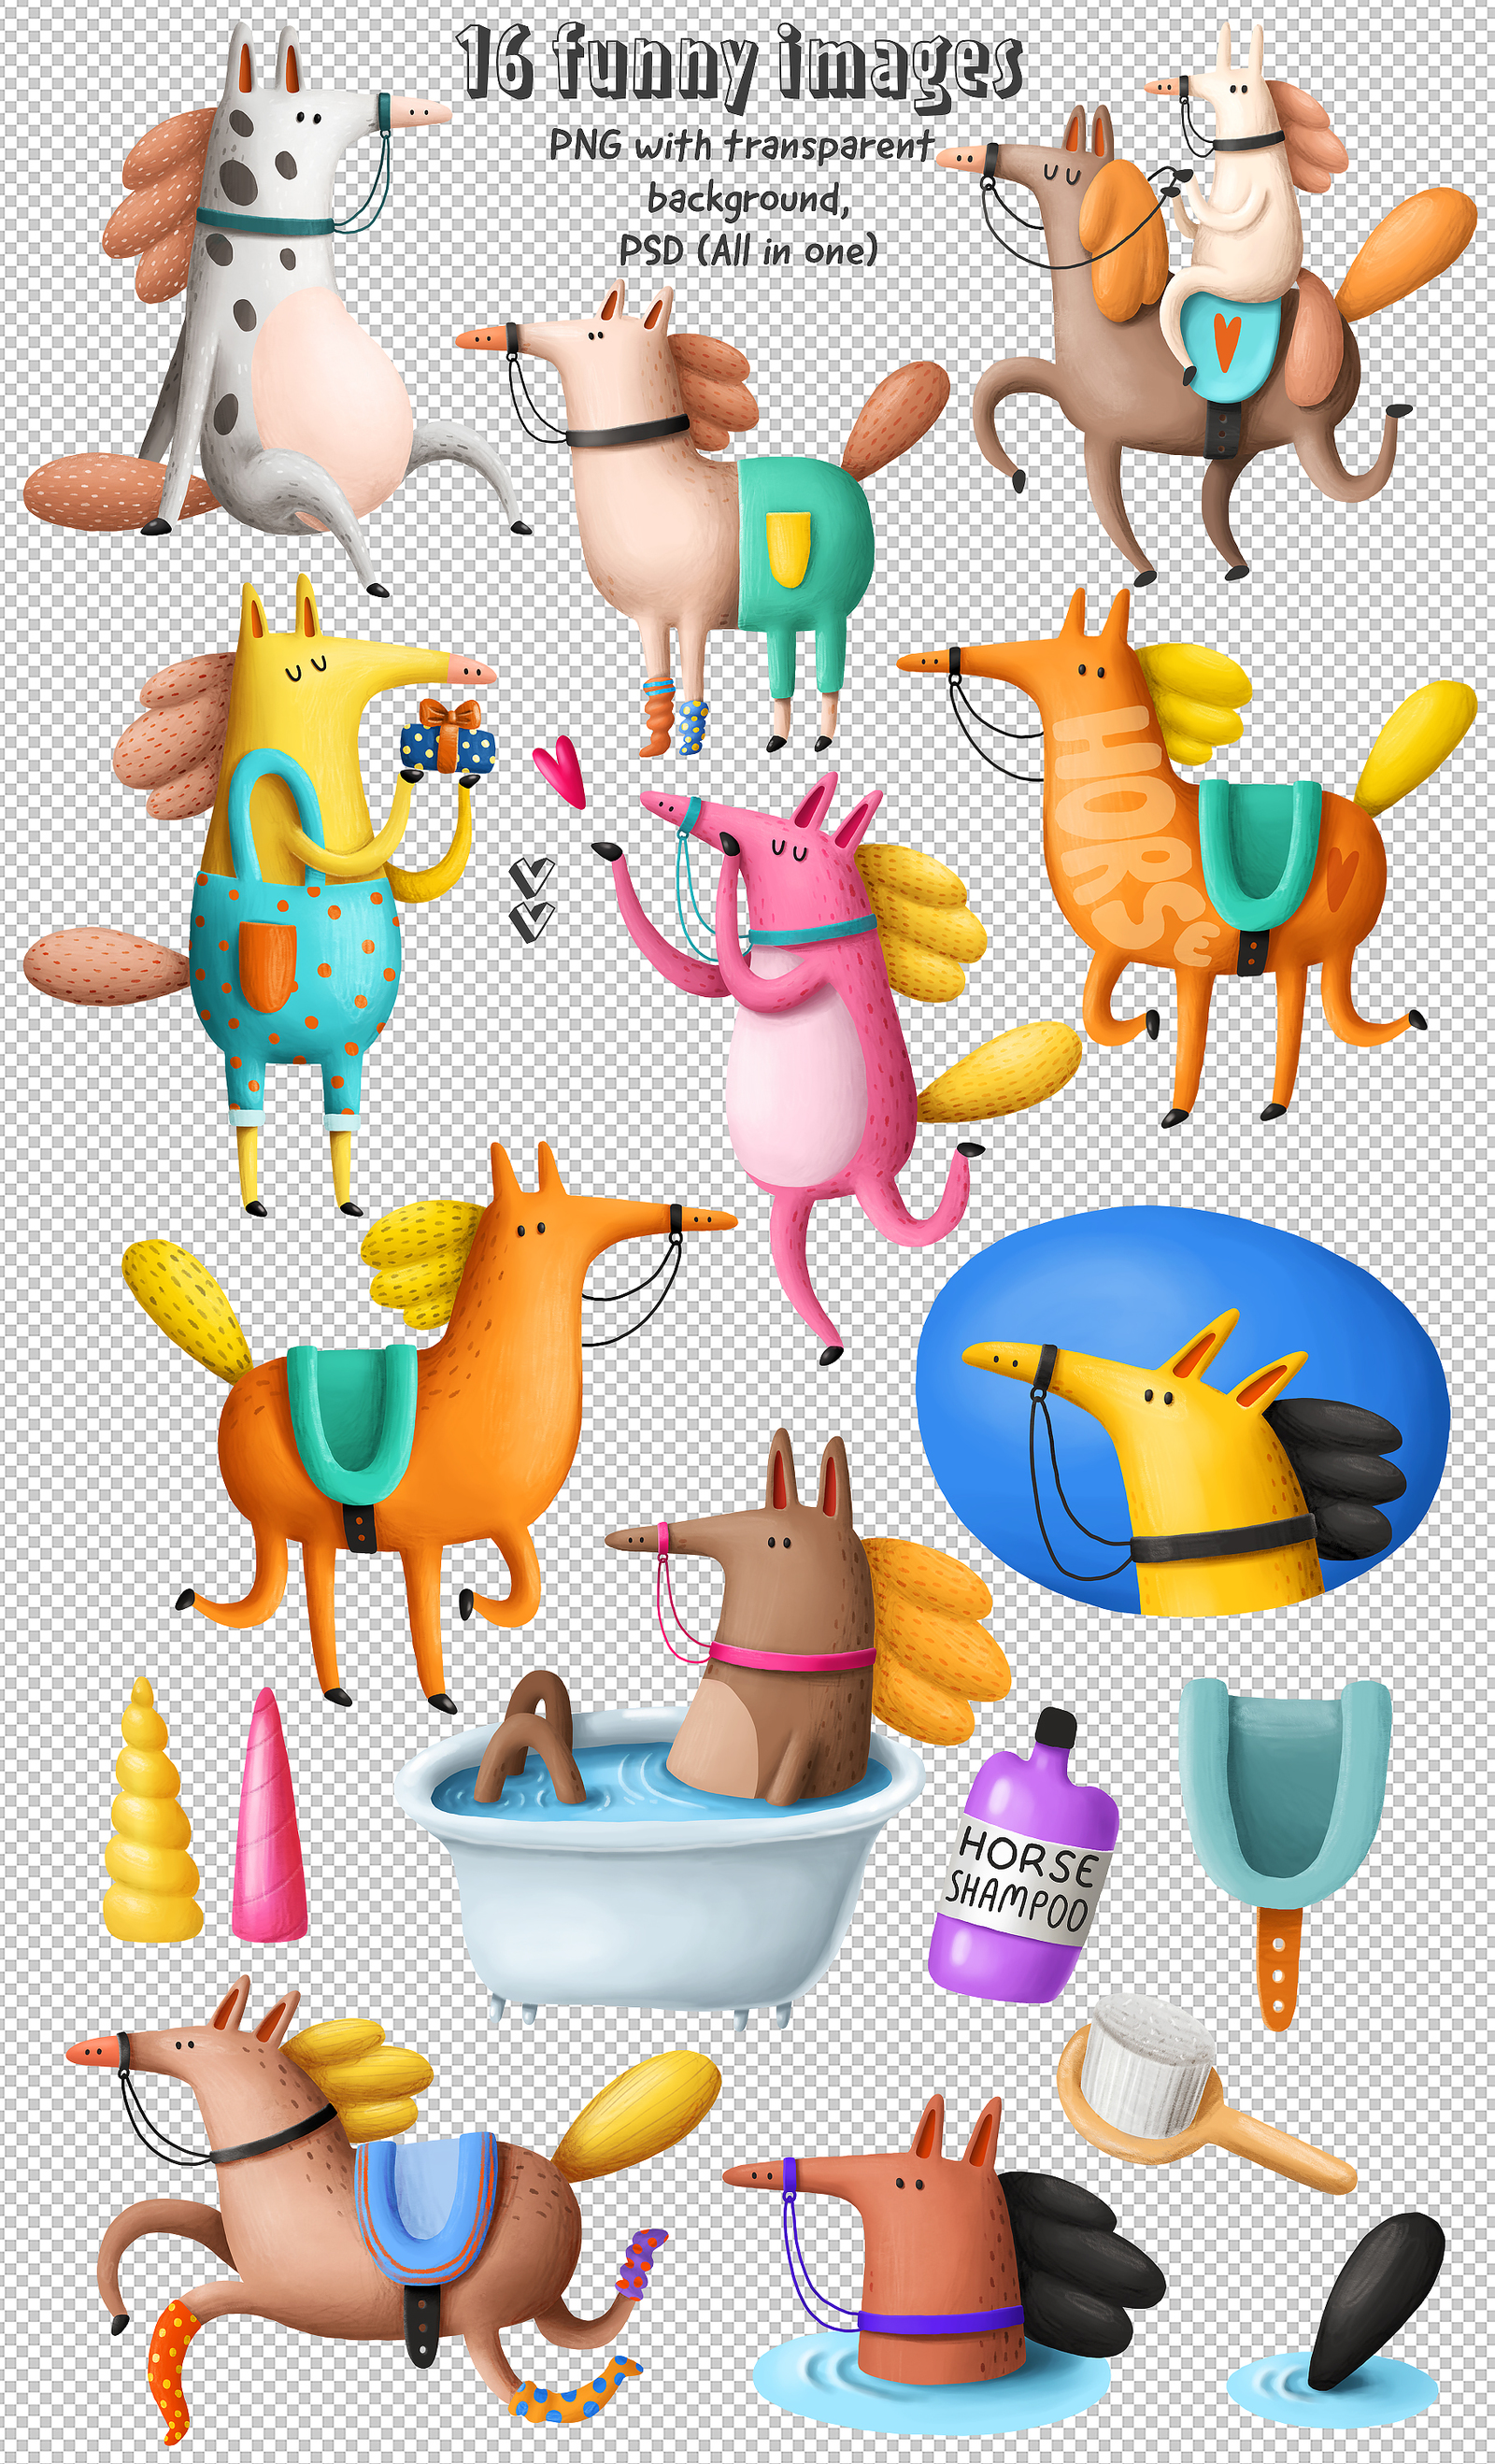 Collection of Cartoon Horses